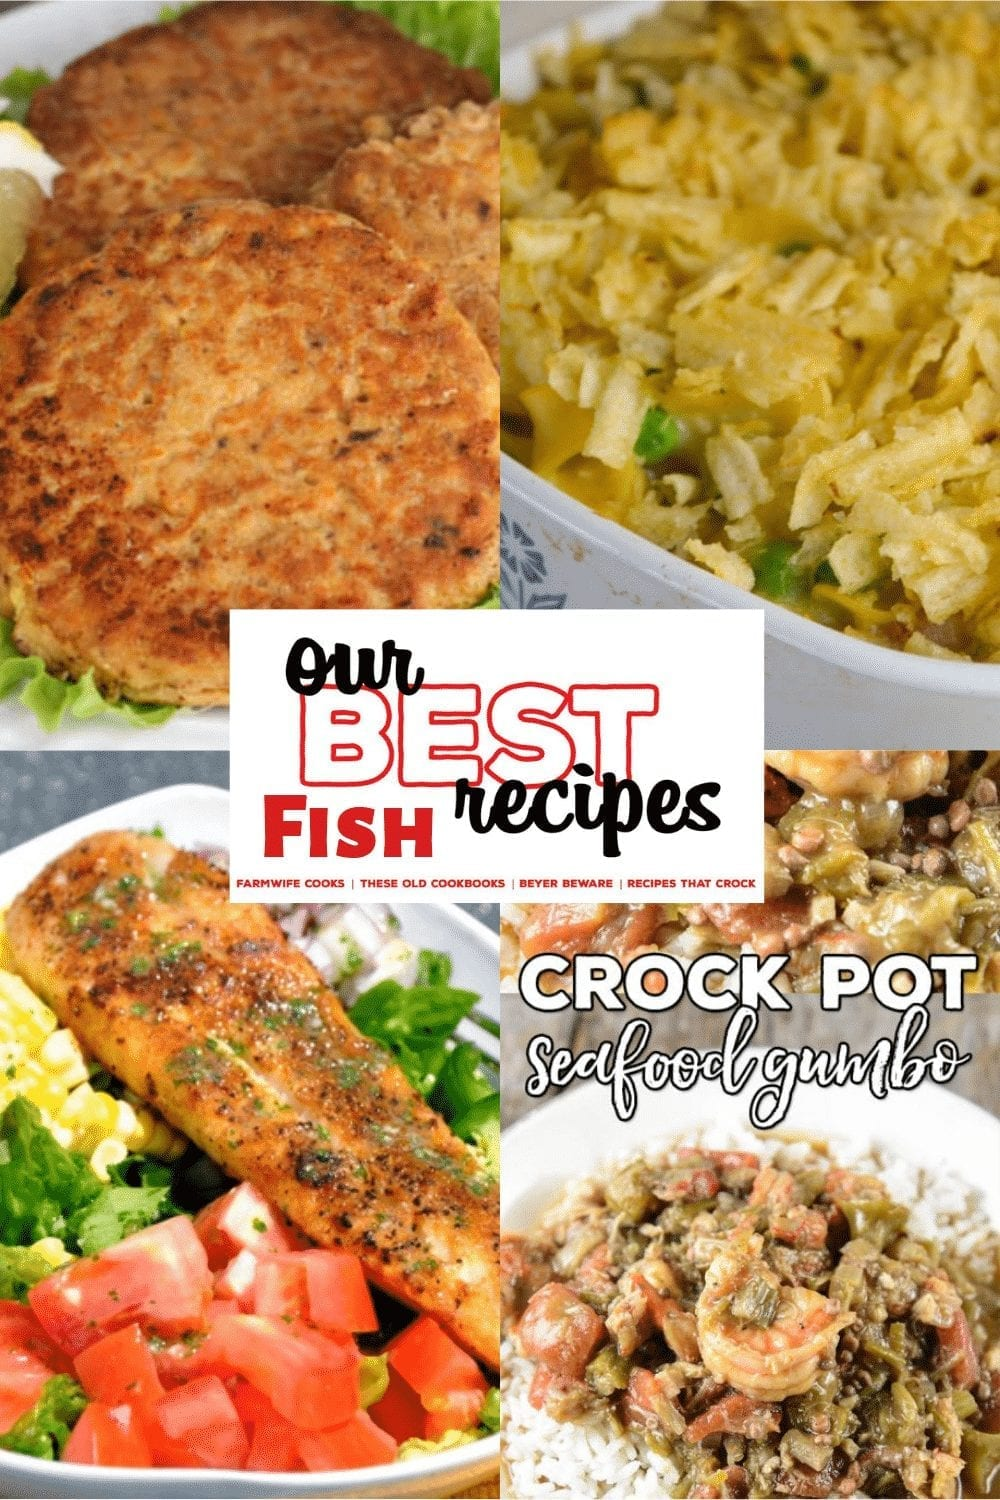 Our best fish recipes will not disappoint with everything from salmon patties to tuna noodle casserole to seafood gumbo to blackened fish tacos. #Fish #Seafood #OurBestRecipes #Shrimp #Gumbo #SalmonPatties #Tuna